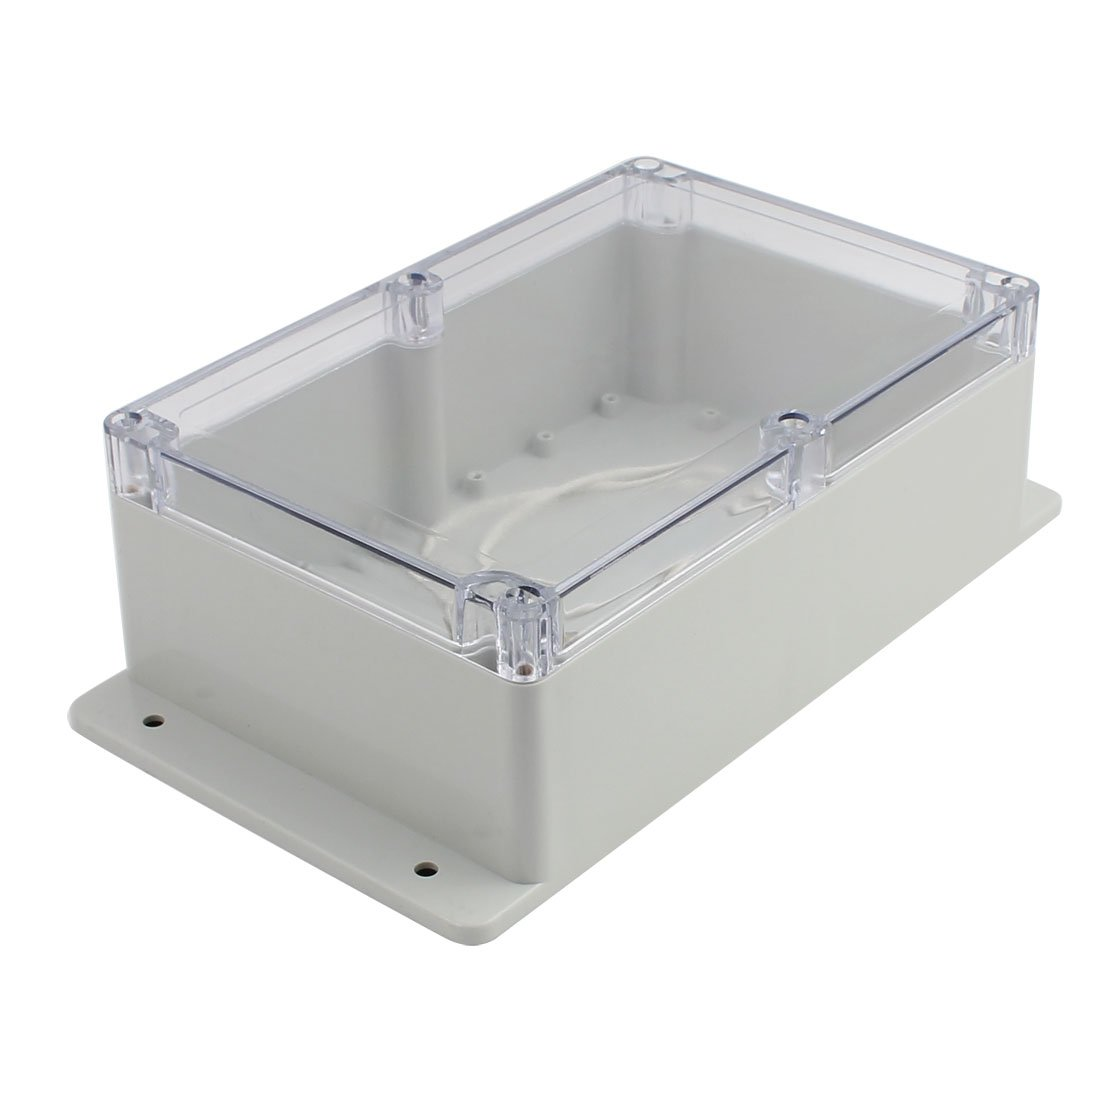 Aexit 230x150x87mm Clear Cover Waterproof Junction Electronic Project Box Enclosure